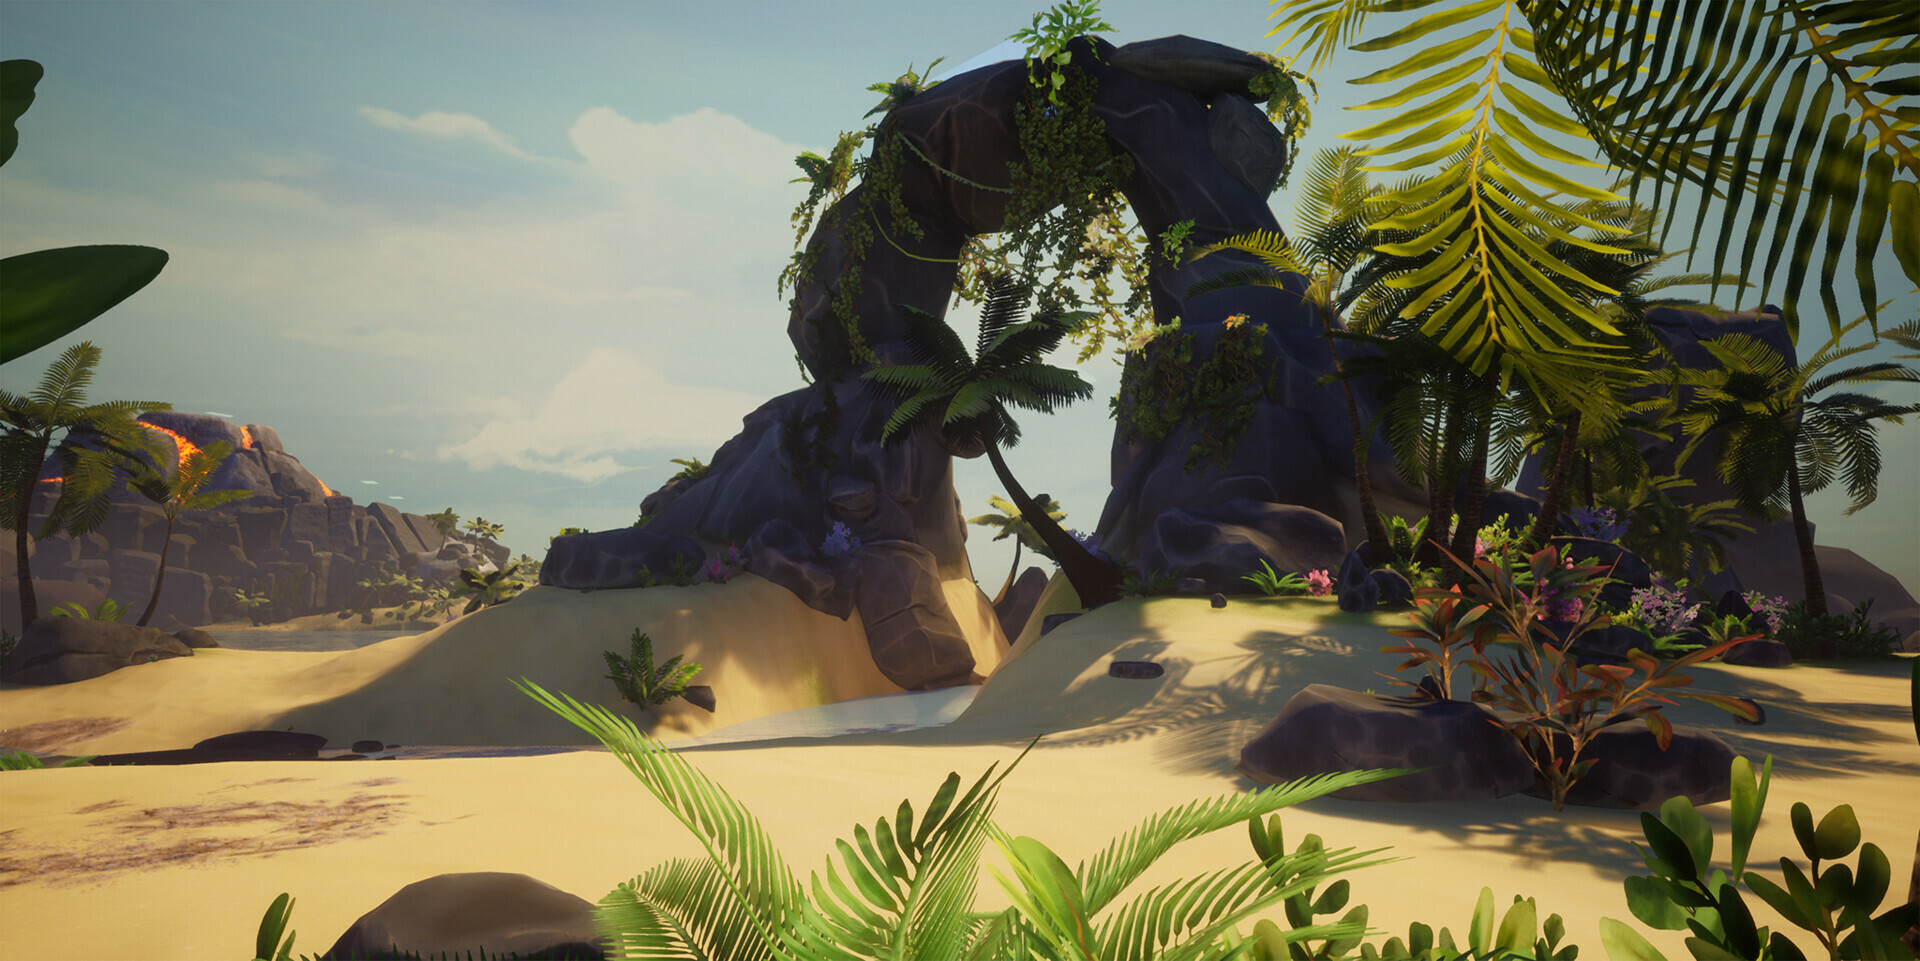 The Beach level was our 2nd environment for the project. I assisted in the set dressing of the two main islands and the volcano island, as well as continued to create props to fit this environment.